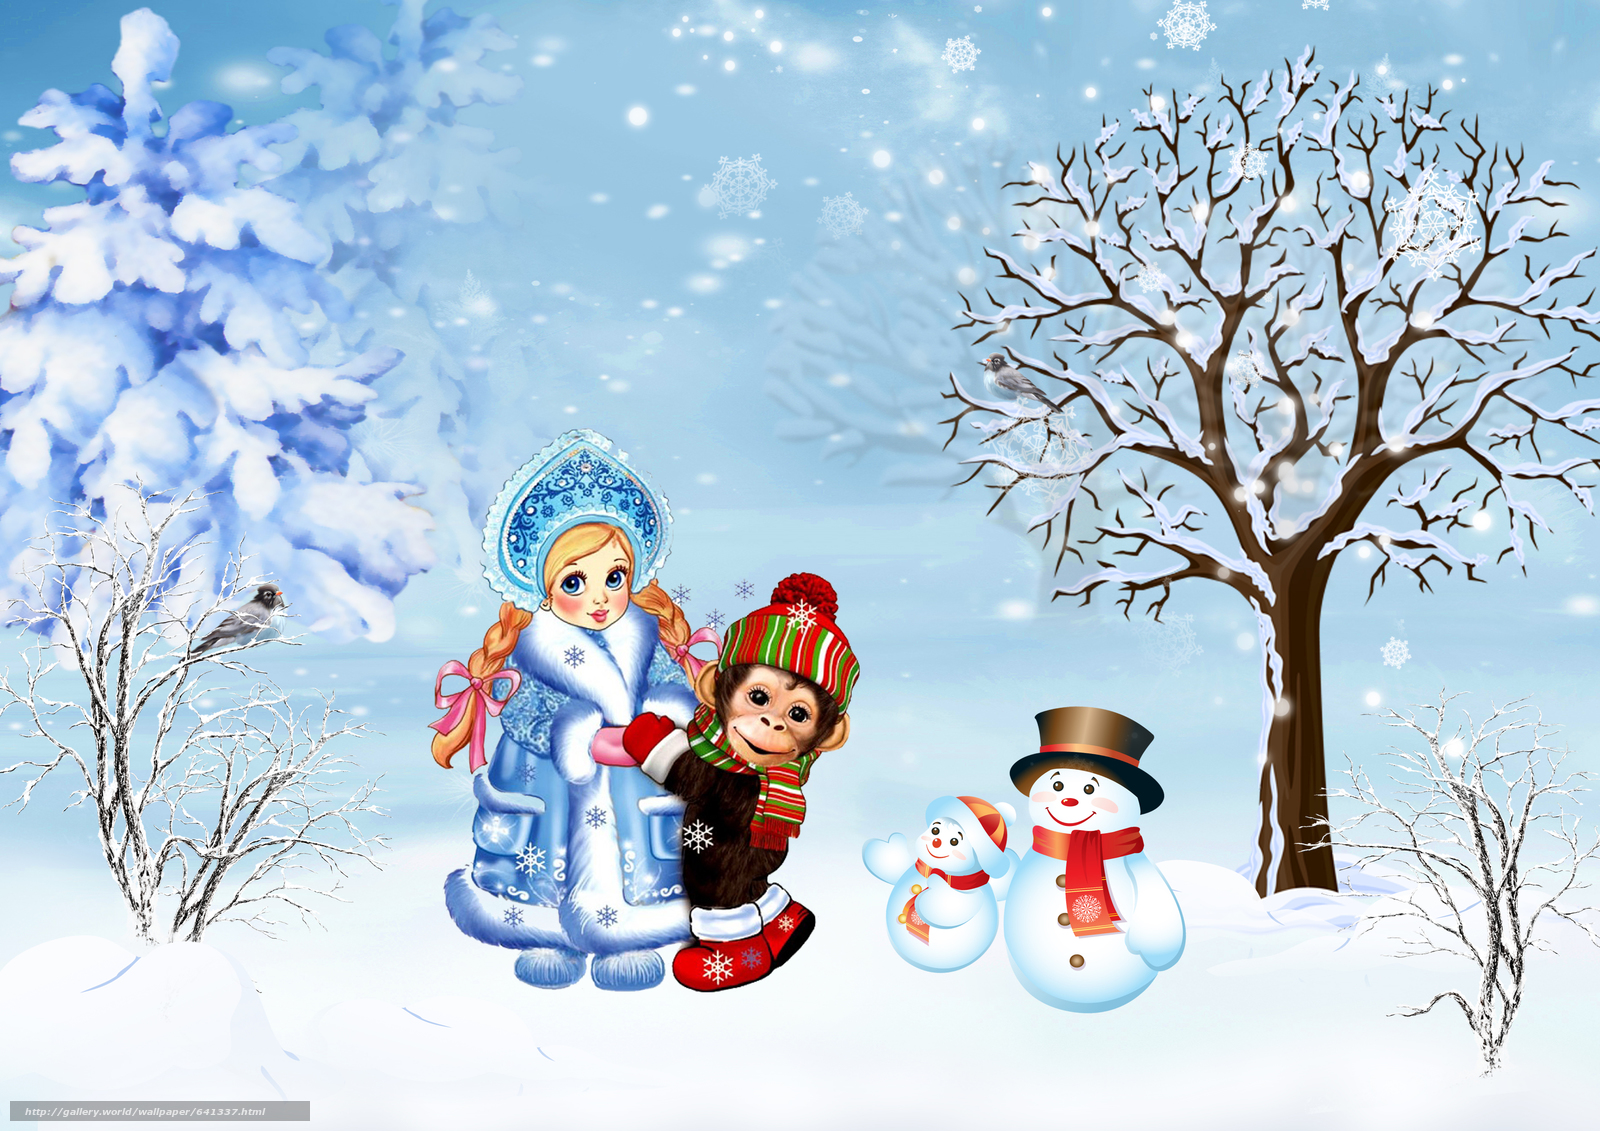 Download wallpaper Christmas Wallpaper,  Christmas Background,  year of the monkey,  happy new year free desktop wallpaper in the resolution 4961x3508 — picture №641337